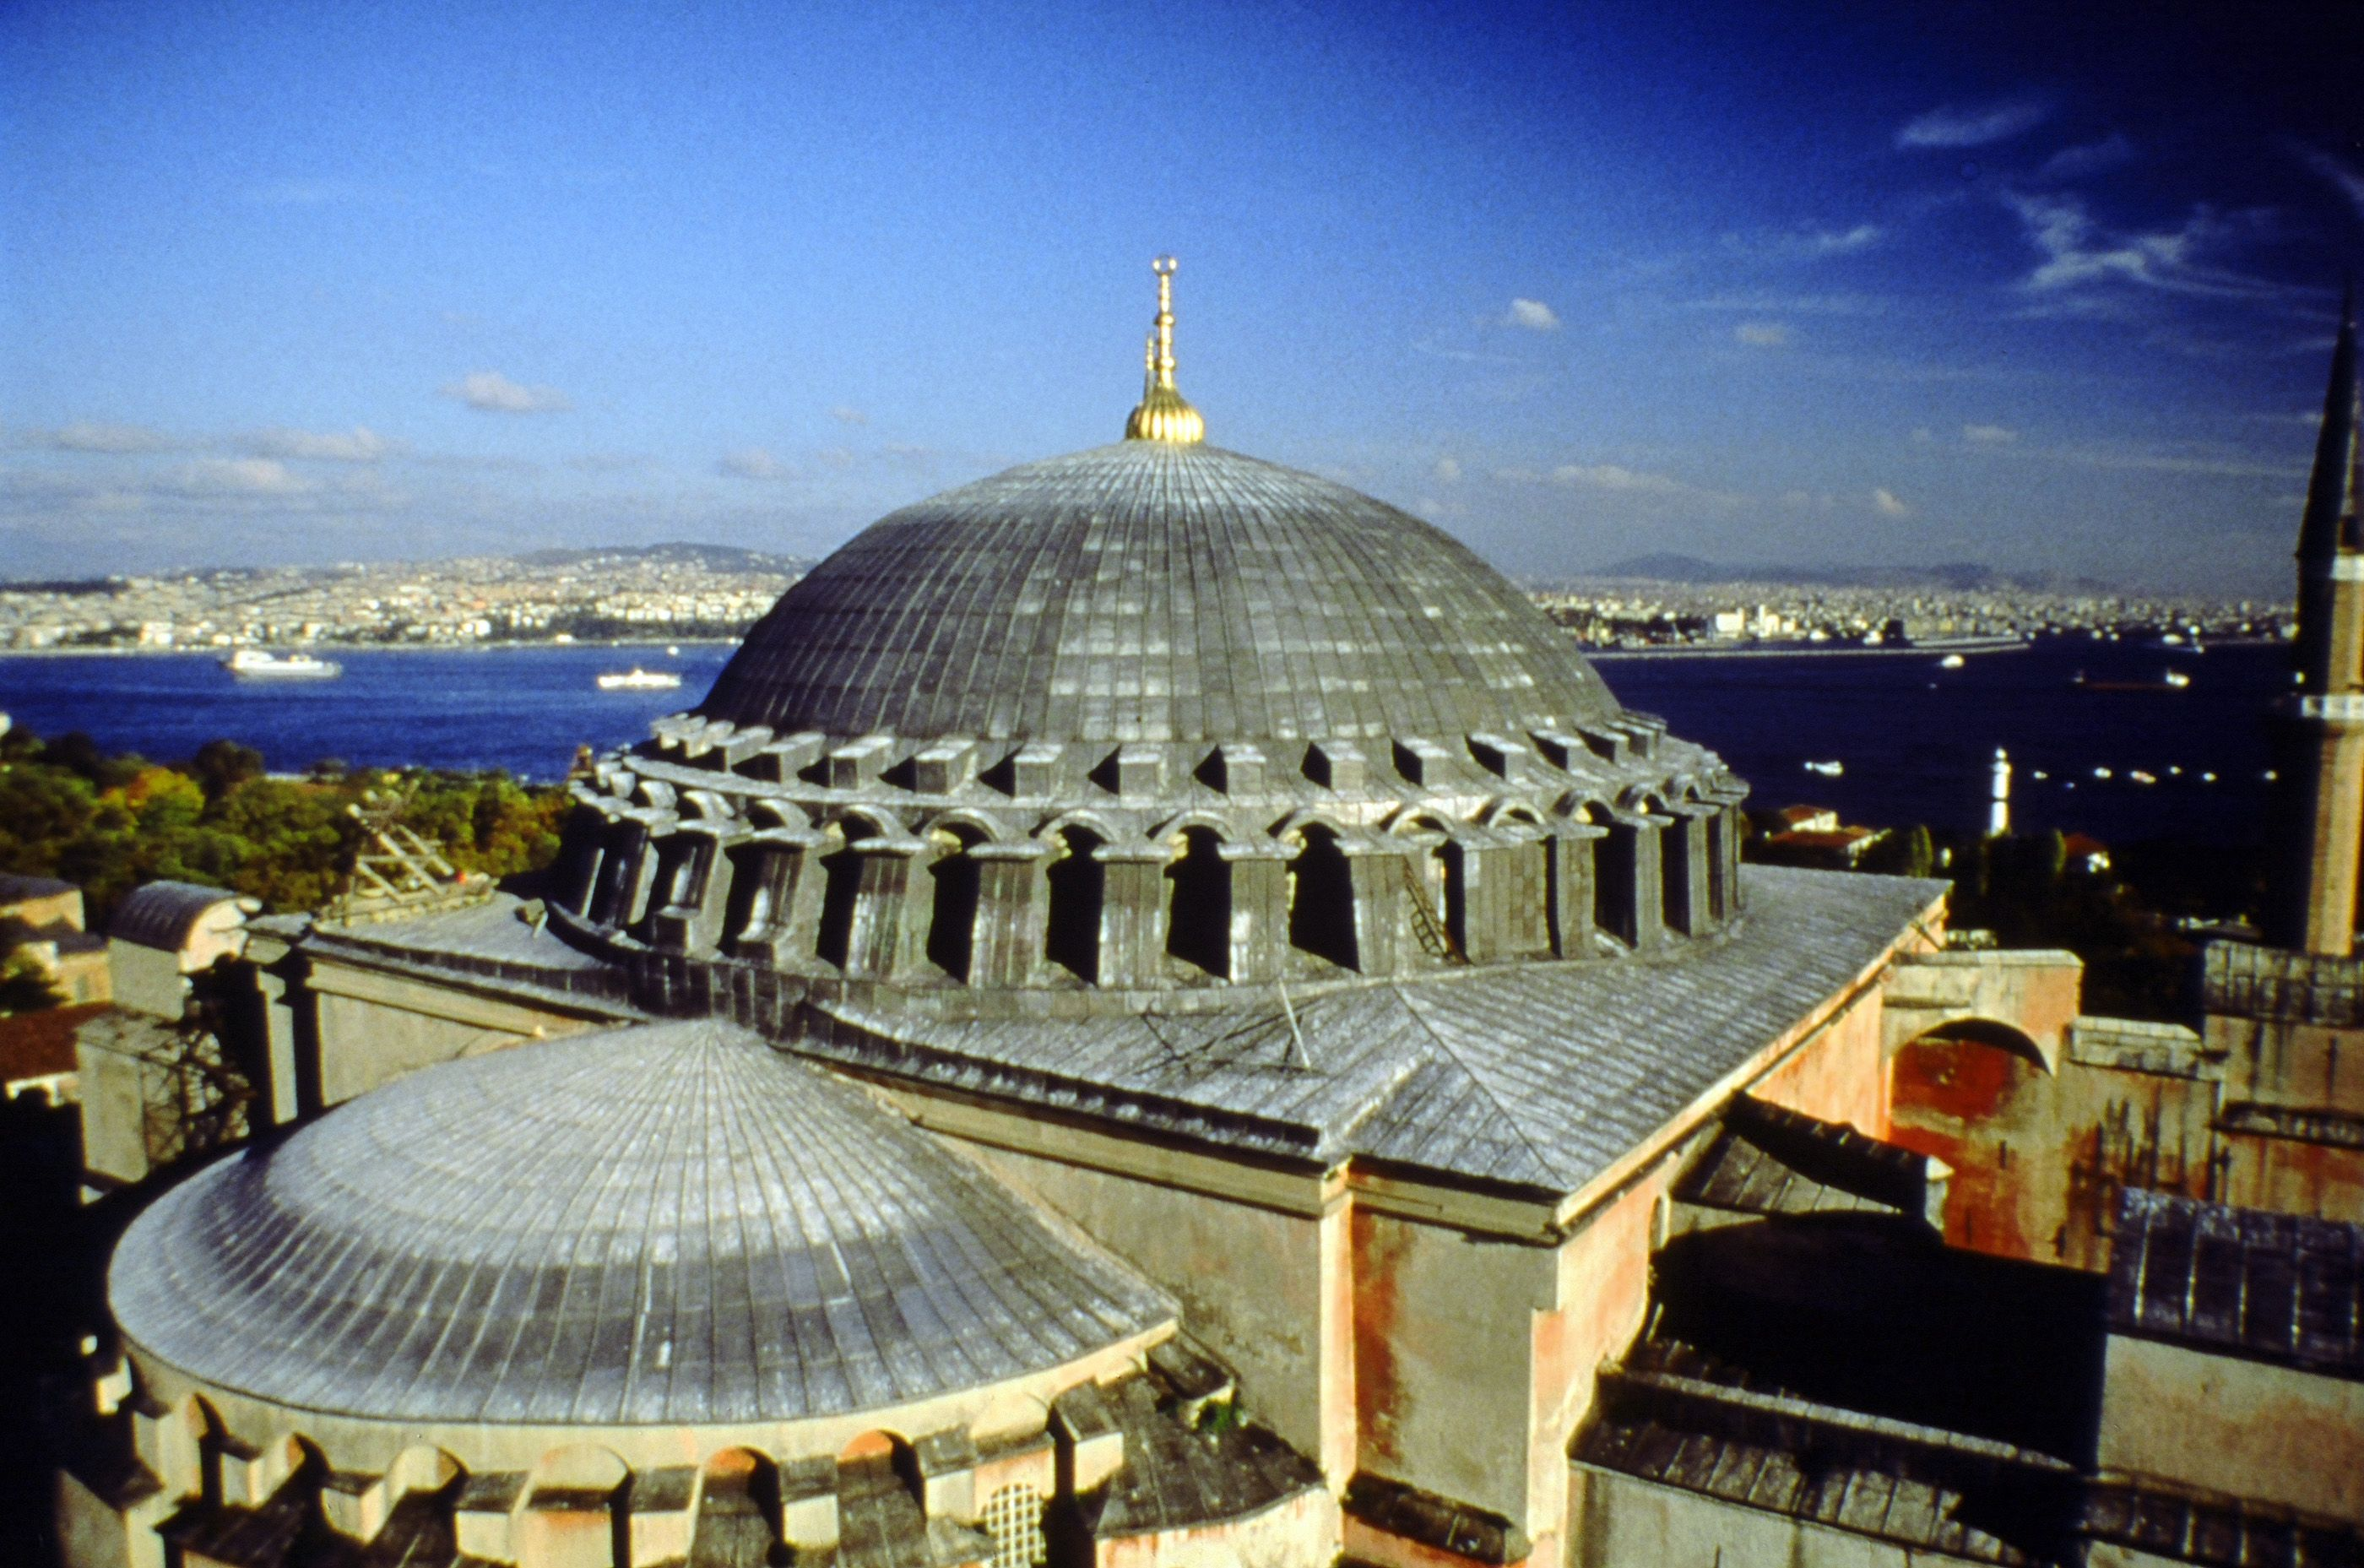 Exterior View Of Central Dome With Ring Of 40 Windows At Base Cruise Deals Cruise Reviews Cruise Critic